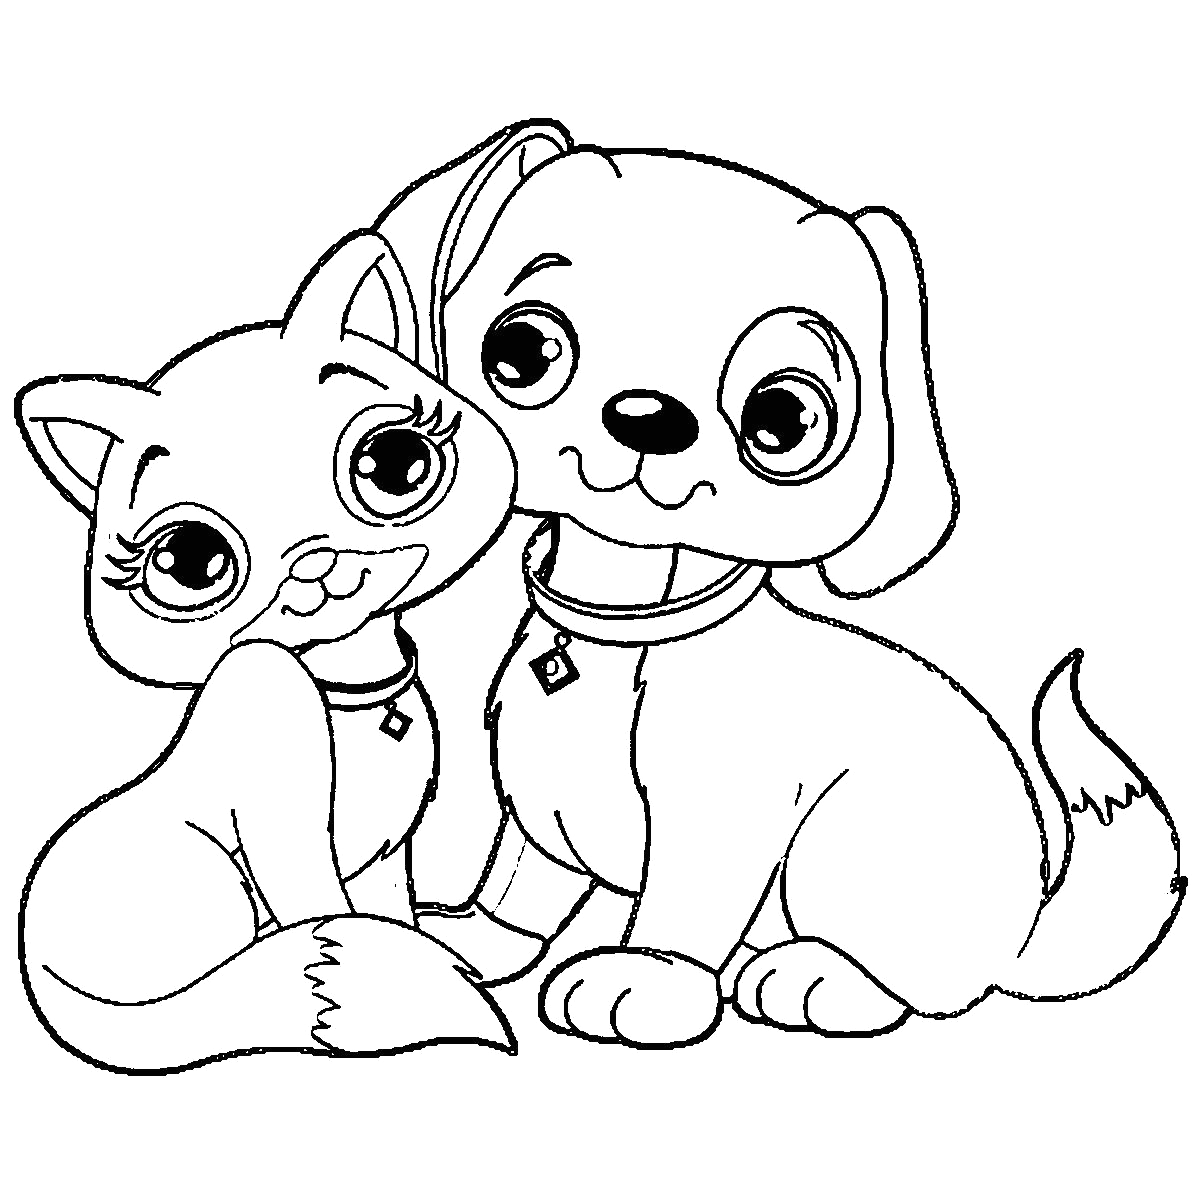 puppy and kitten drawing